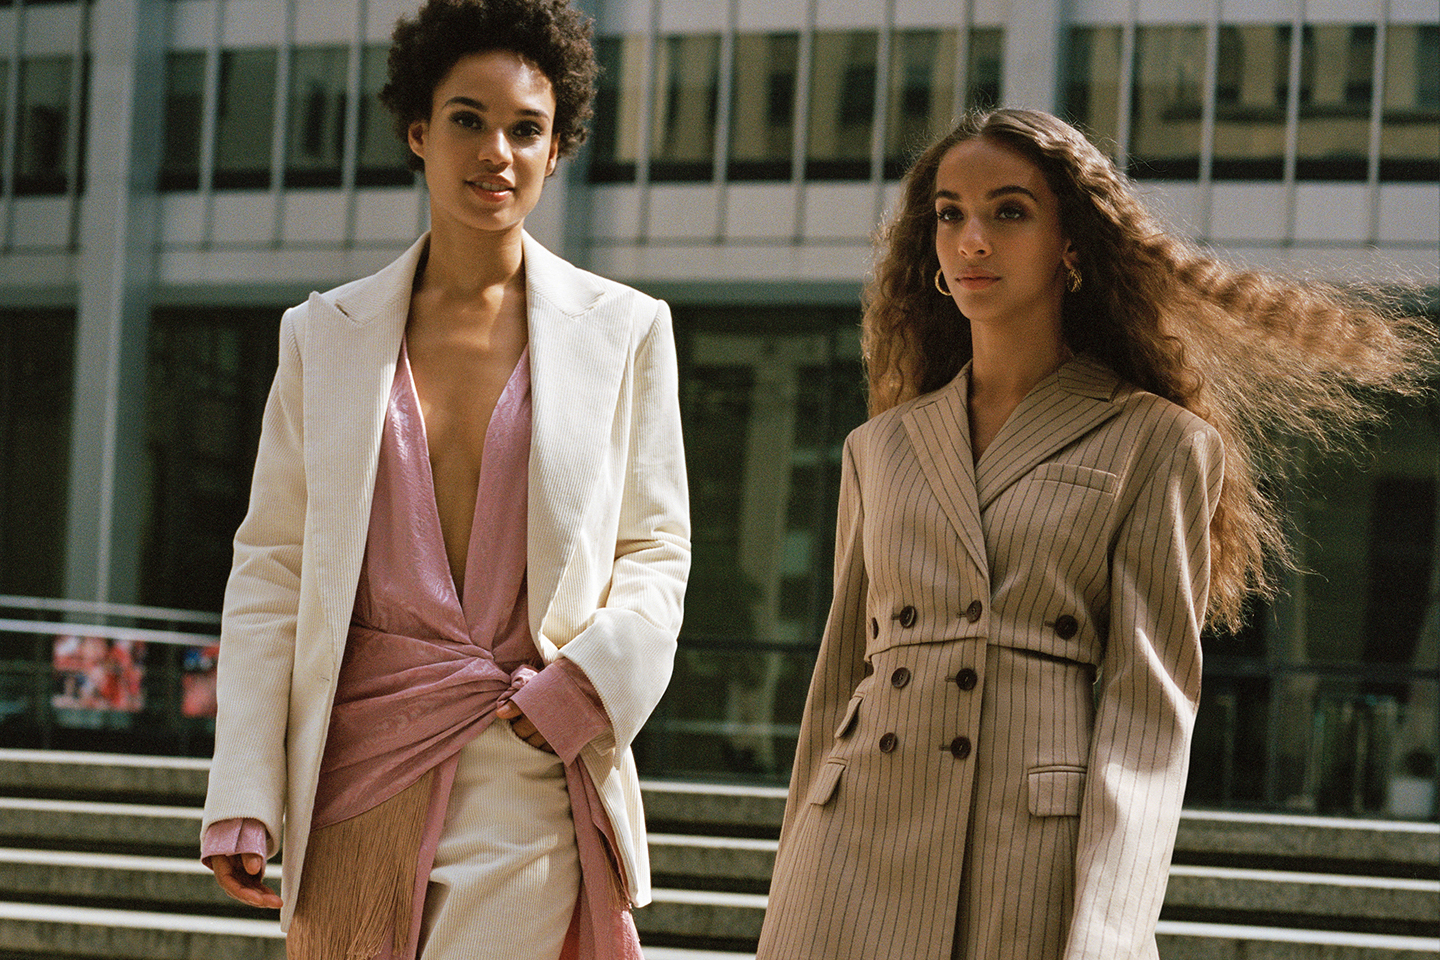 Fall/winter '18 has arrived at NET-A-PORTER from 24 Aug - 31 Oct